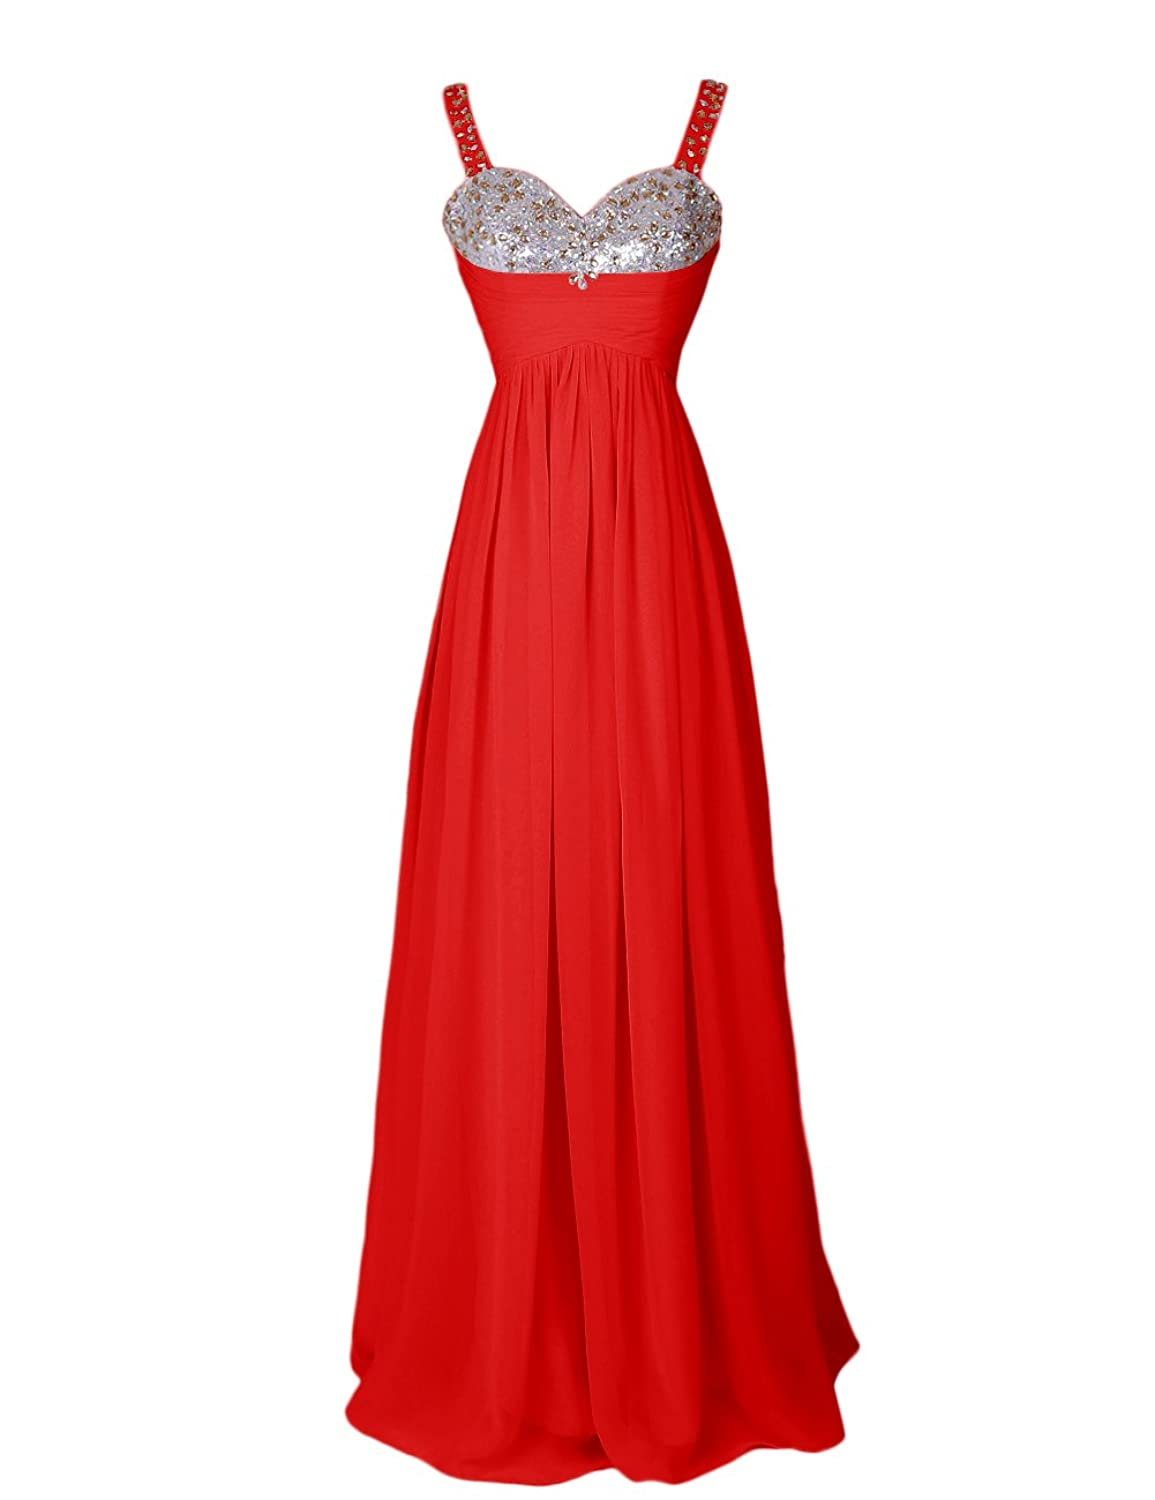 Dressystar Beaded Sweetheart Straps Chiffon Prom Cocktail Dress Floor Length